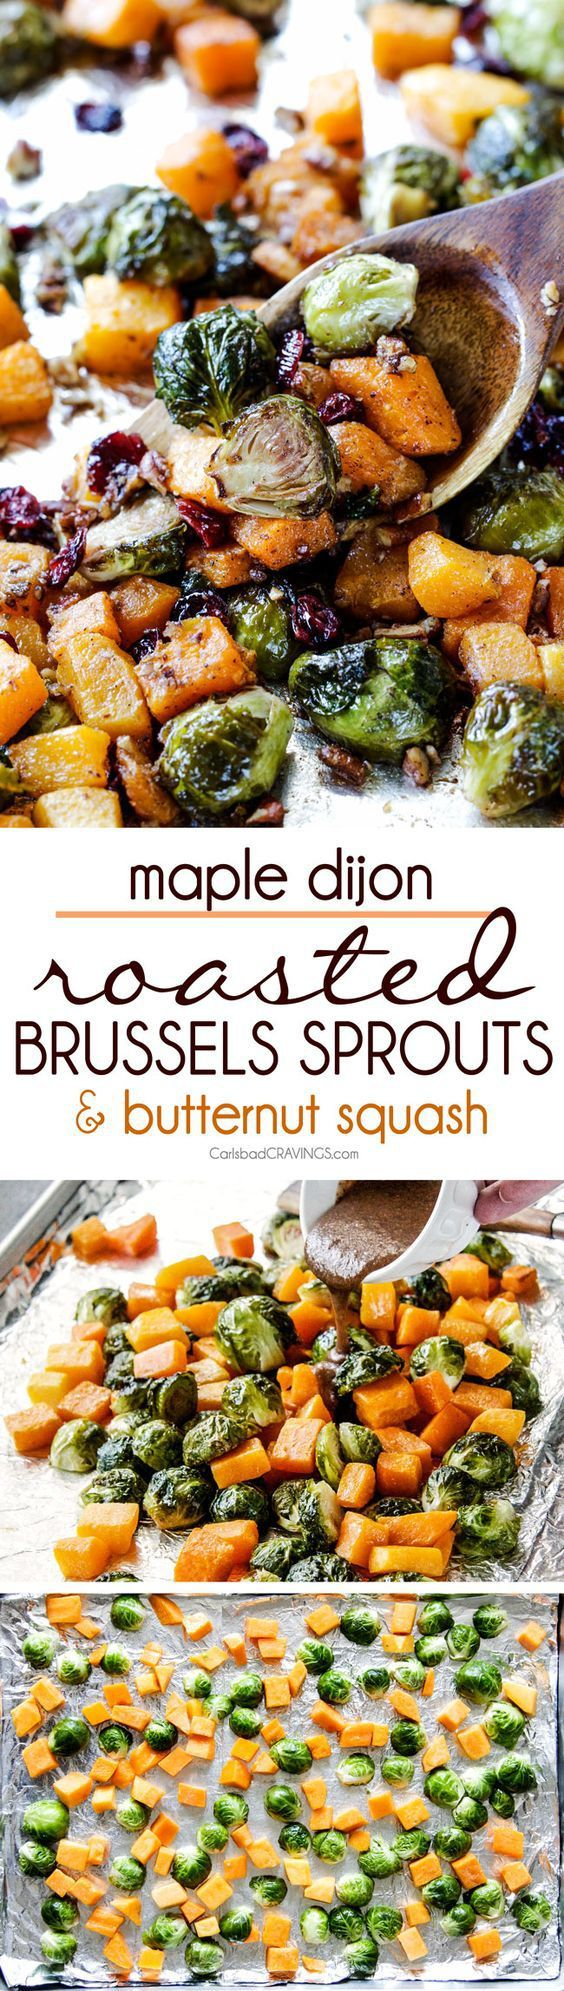 Easy Maple Dijon Roasted Brussels Sprouts and Butternut Squash tossed with cranberries and bacon Vegetable Side Dish Recipe via Carlsbad Cravings - the BEST combo ever! tangy, salty, sweet, crunchy, crispy! perfect for Thanksgiving and Christmas, easy enough for everyday!